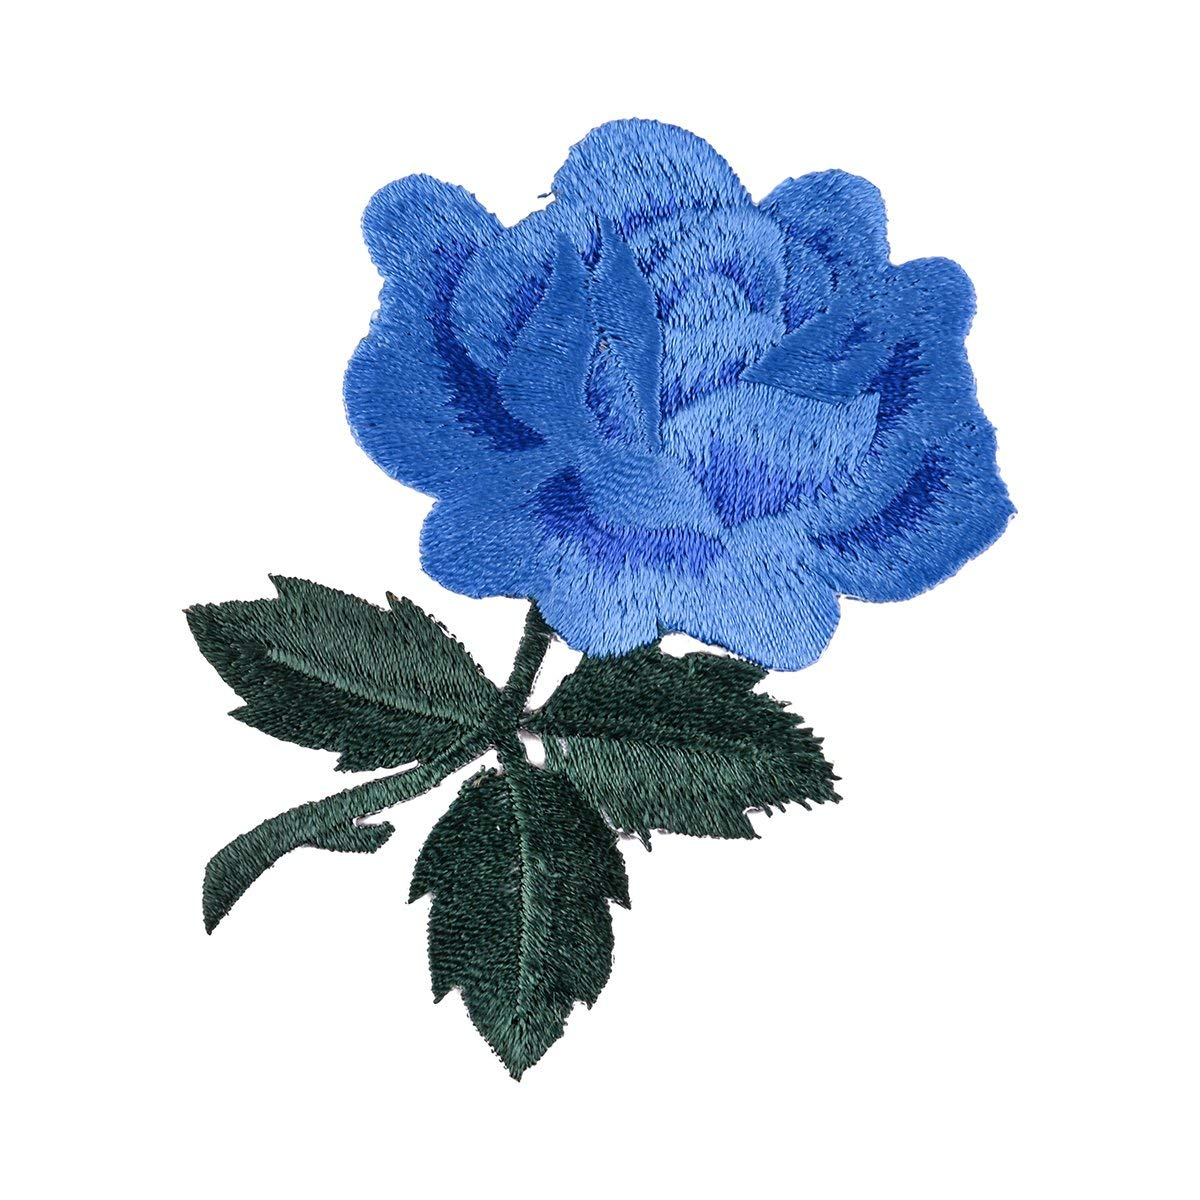 Rose Patch Iron on Patches, Flower Applique Patches, Beautiful Rose Blossom Embroidery Applique - 1pcs Embroidery Applique Patch for DIY Clothing ( 3.14 x 2.16 inches)